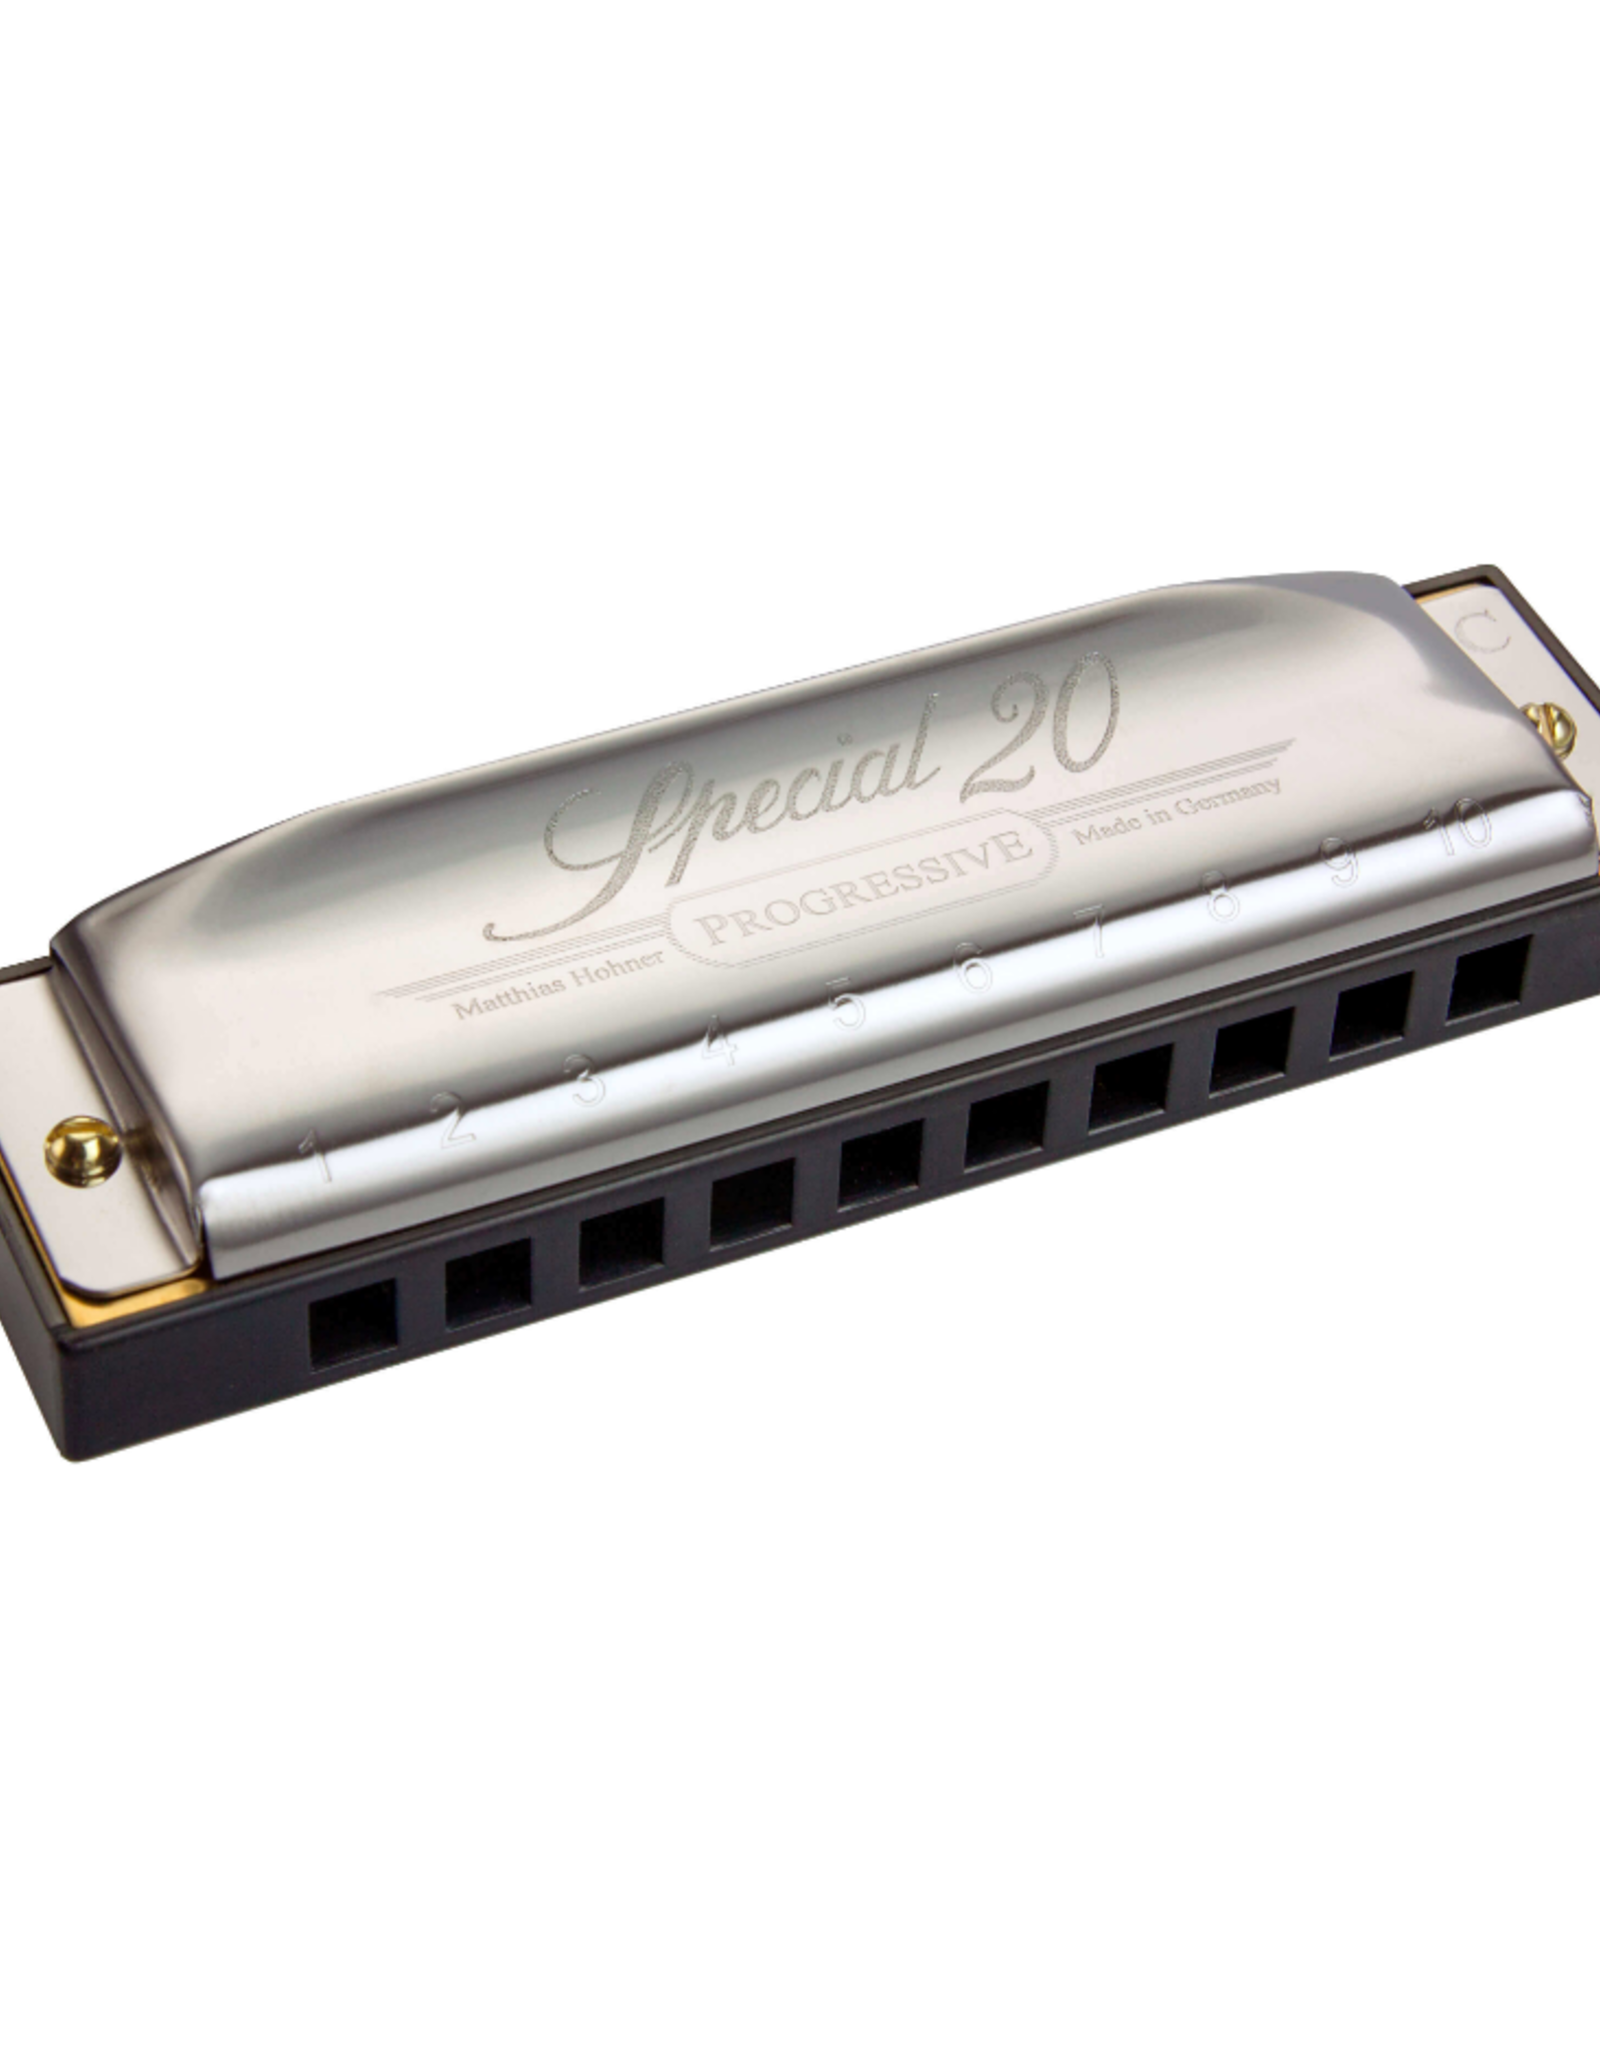 Hohner Hohner Special 20 Harmonica Bb